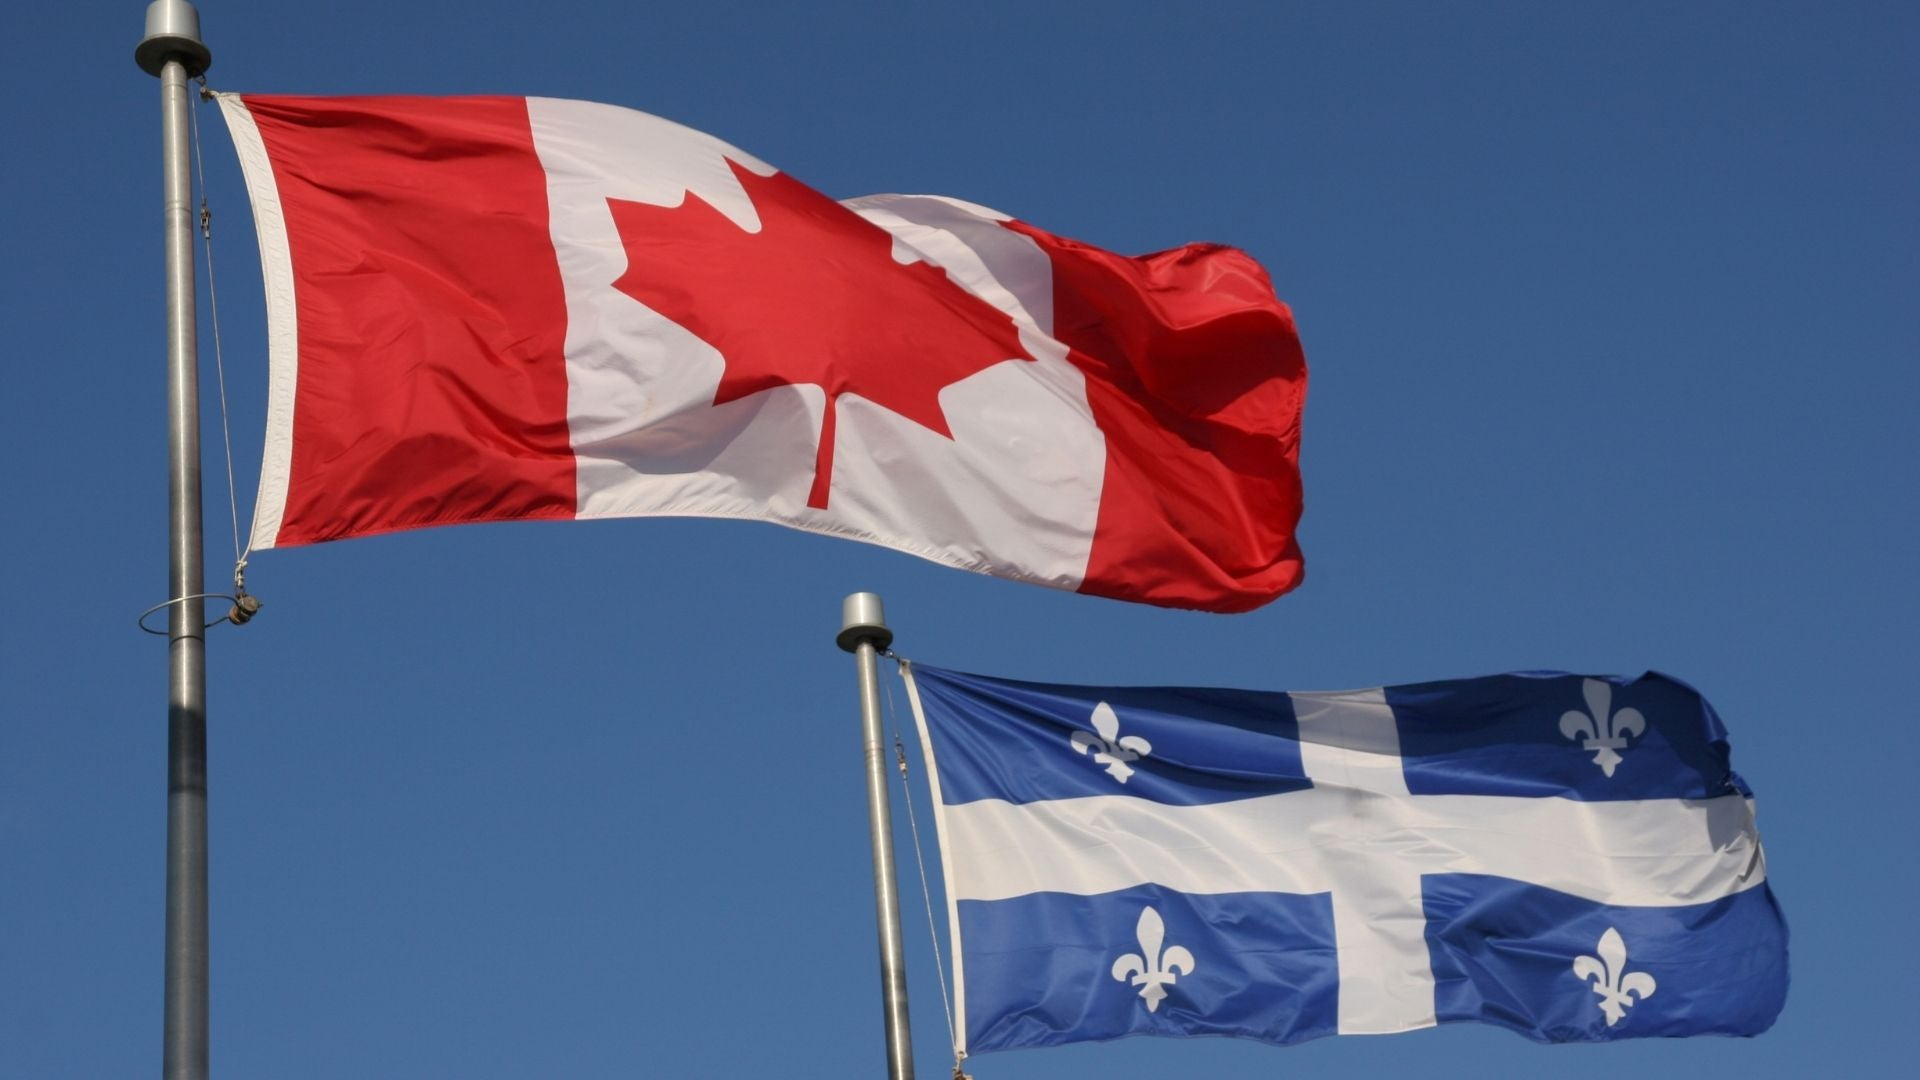 canadian ans quebecer flags waving in the blue sky